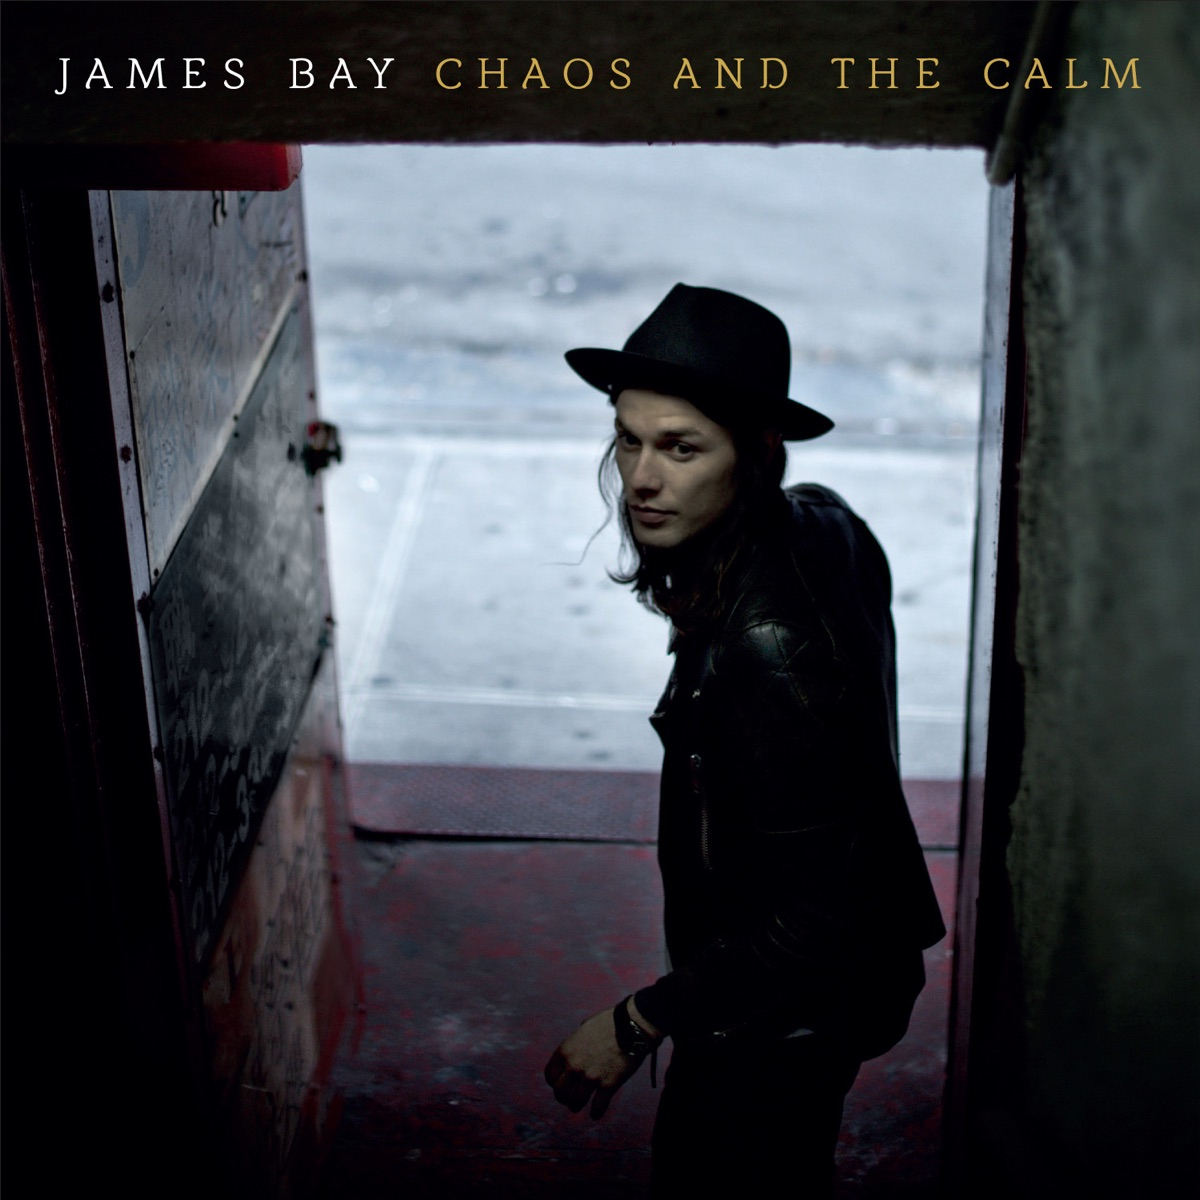 Chaos and the Calm Deluxe Edition James Bay CD cover